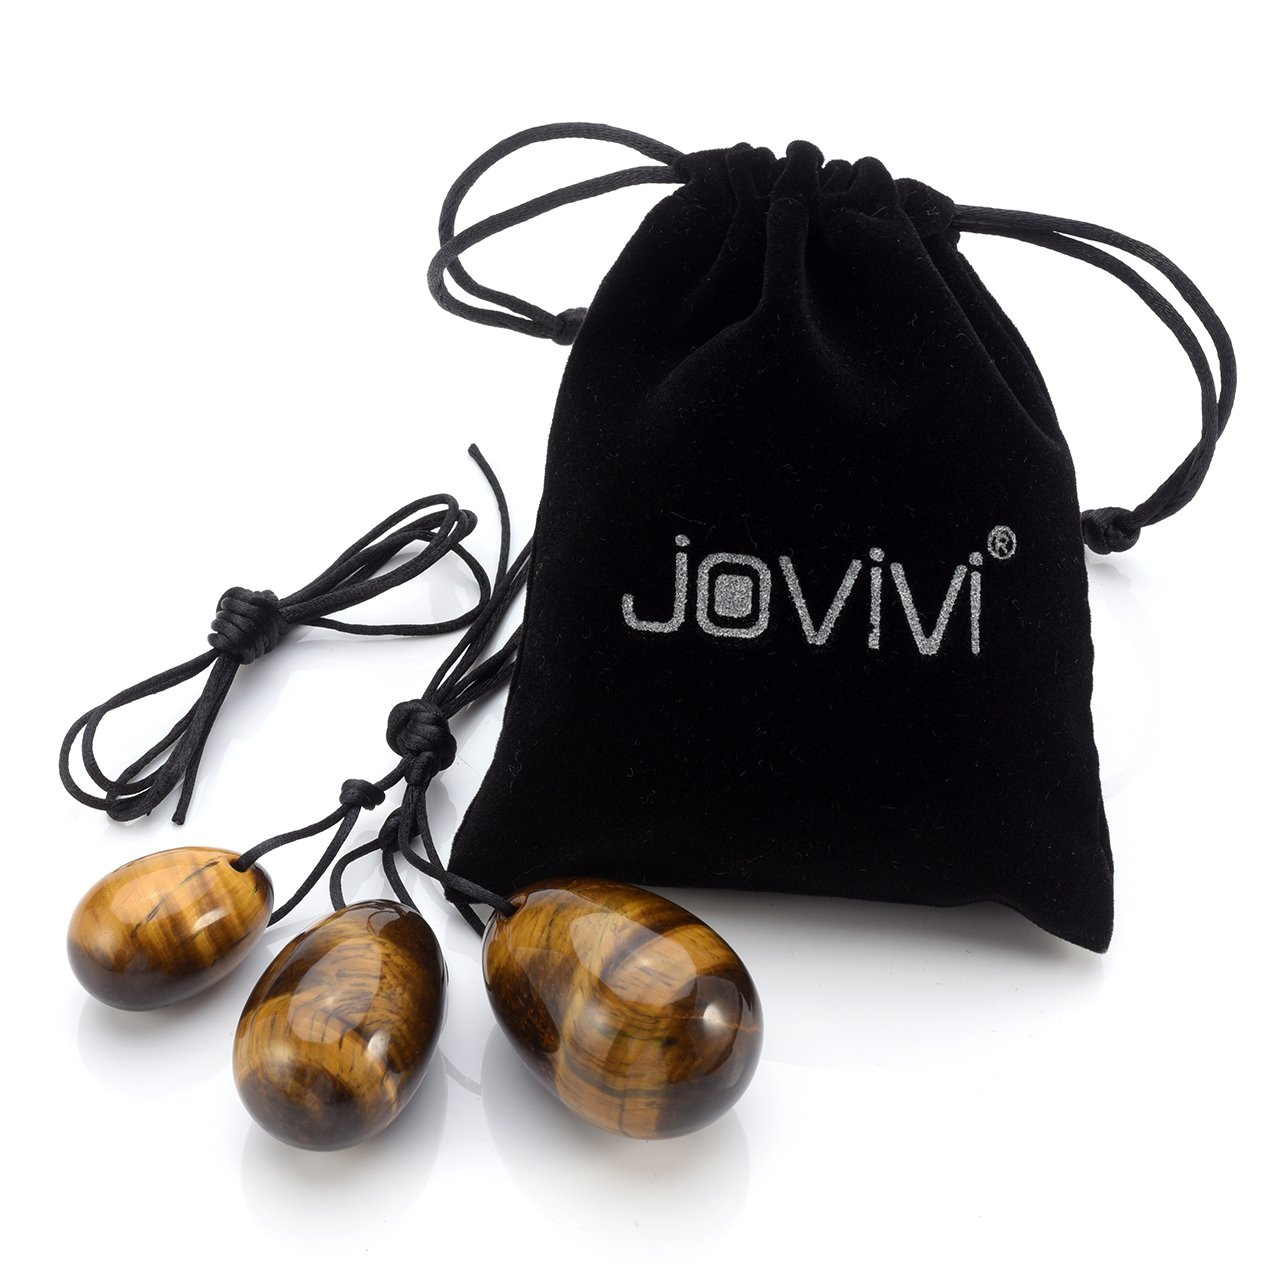 with Unwaxed String,Made of Natural Black Obsidian Jade for Yoni PC Muscles Massage AJ1010105730 Jovivi Yoni Eggs 3pcs Set with 3 Sizes Gemstones,Drilled